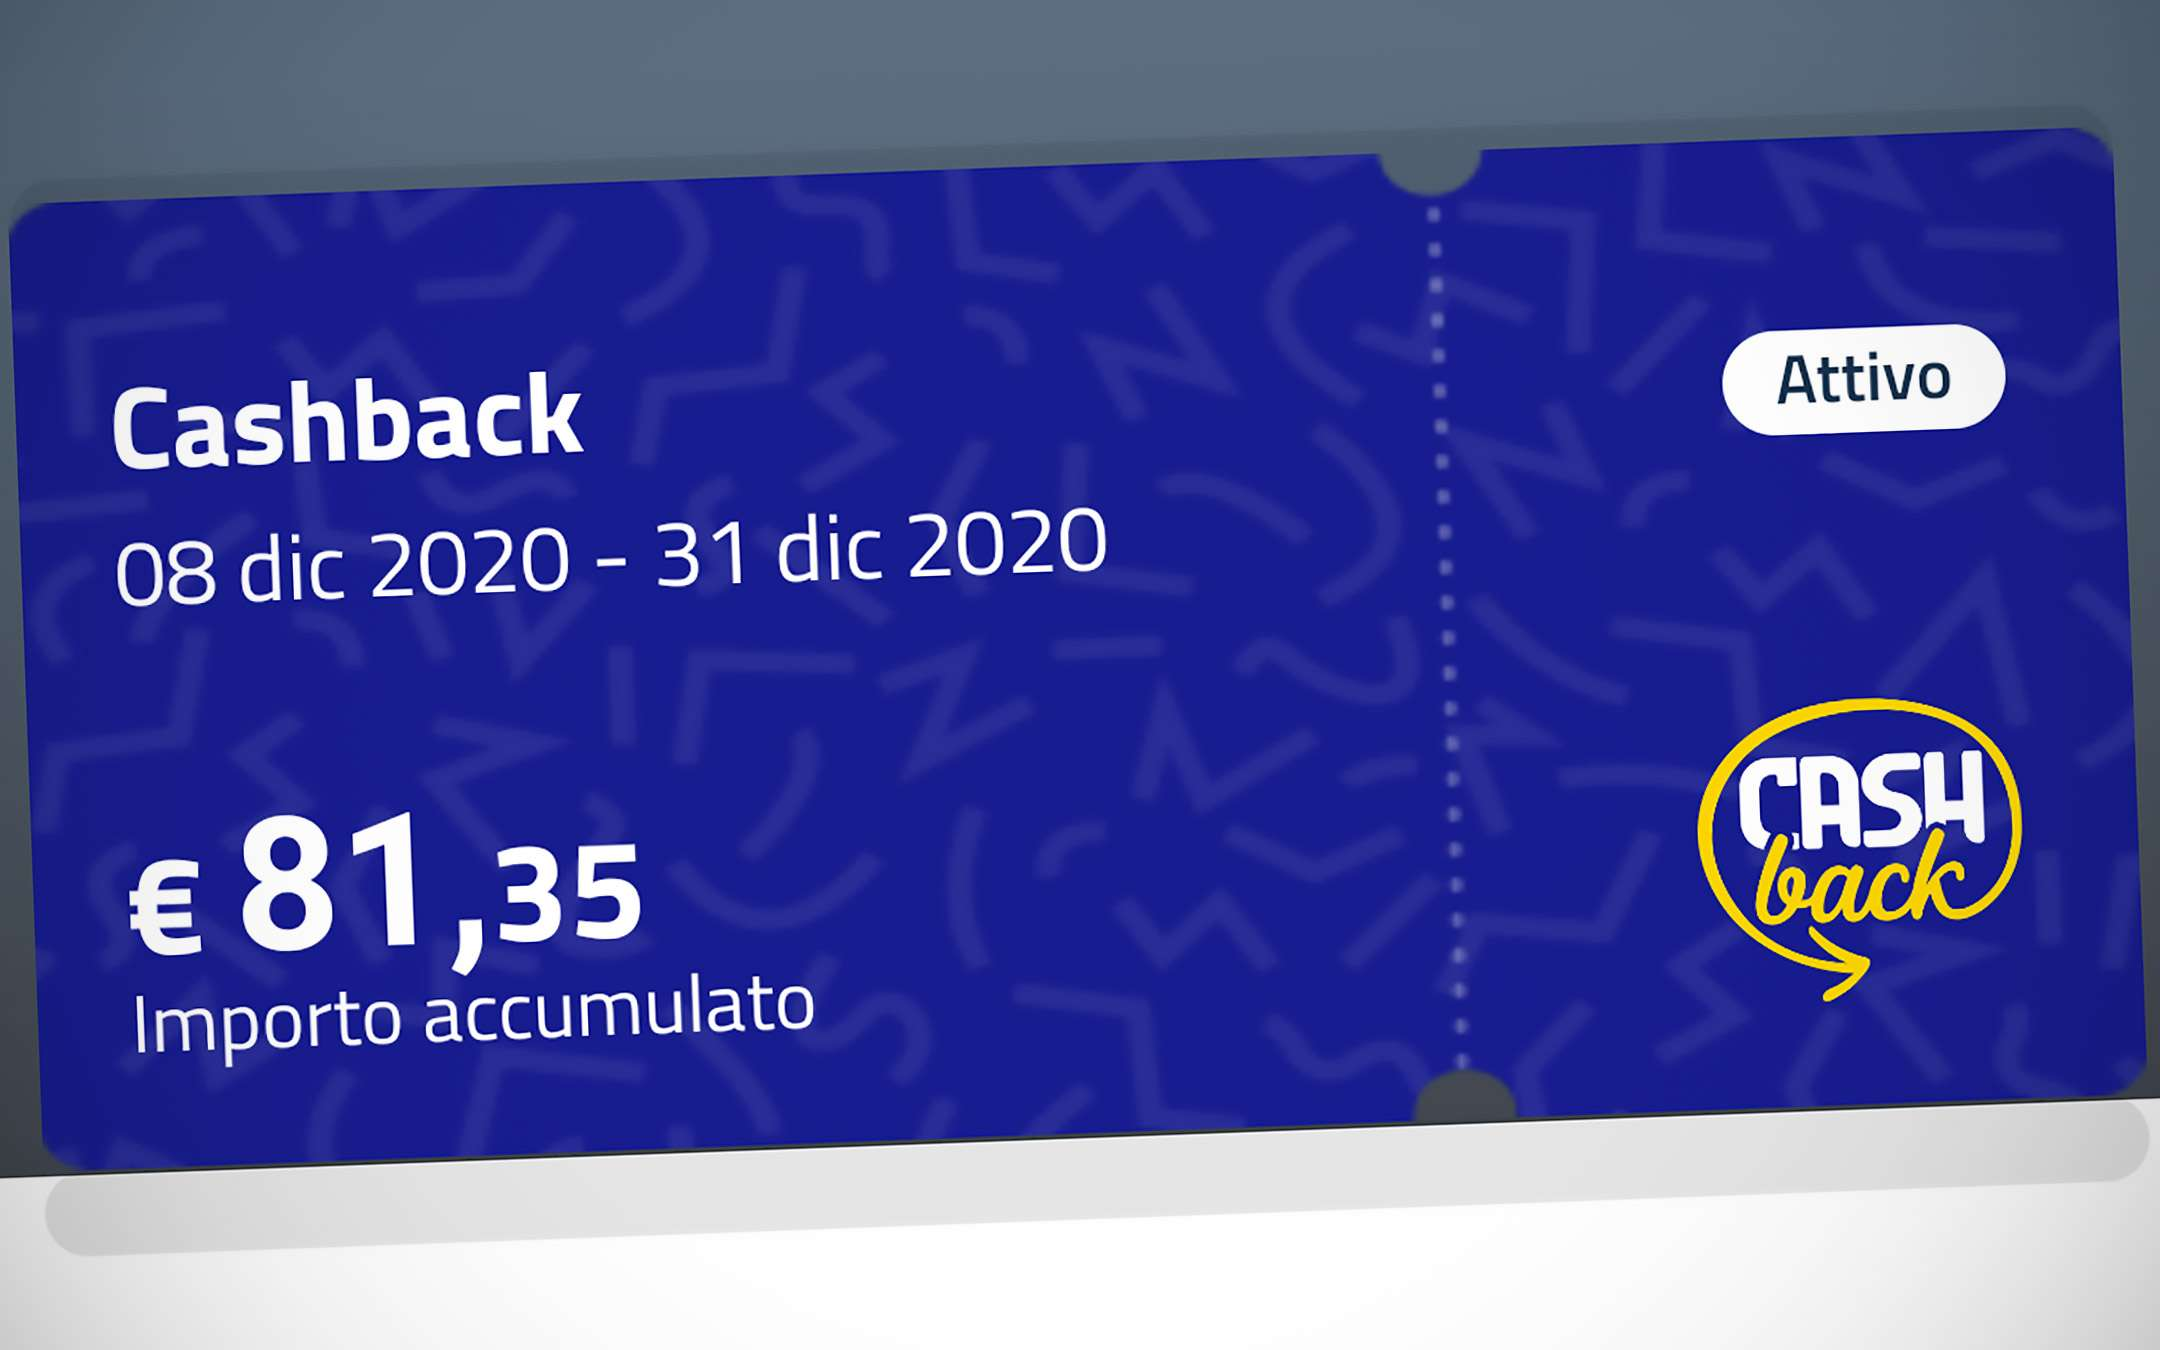 Cashback, the last transactions of the first phase